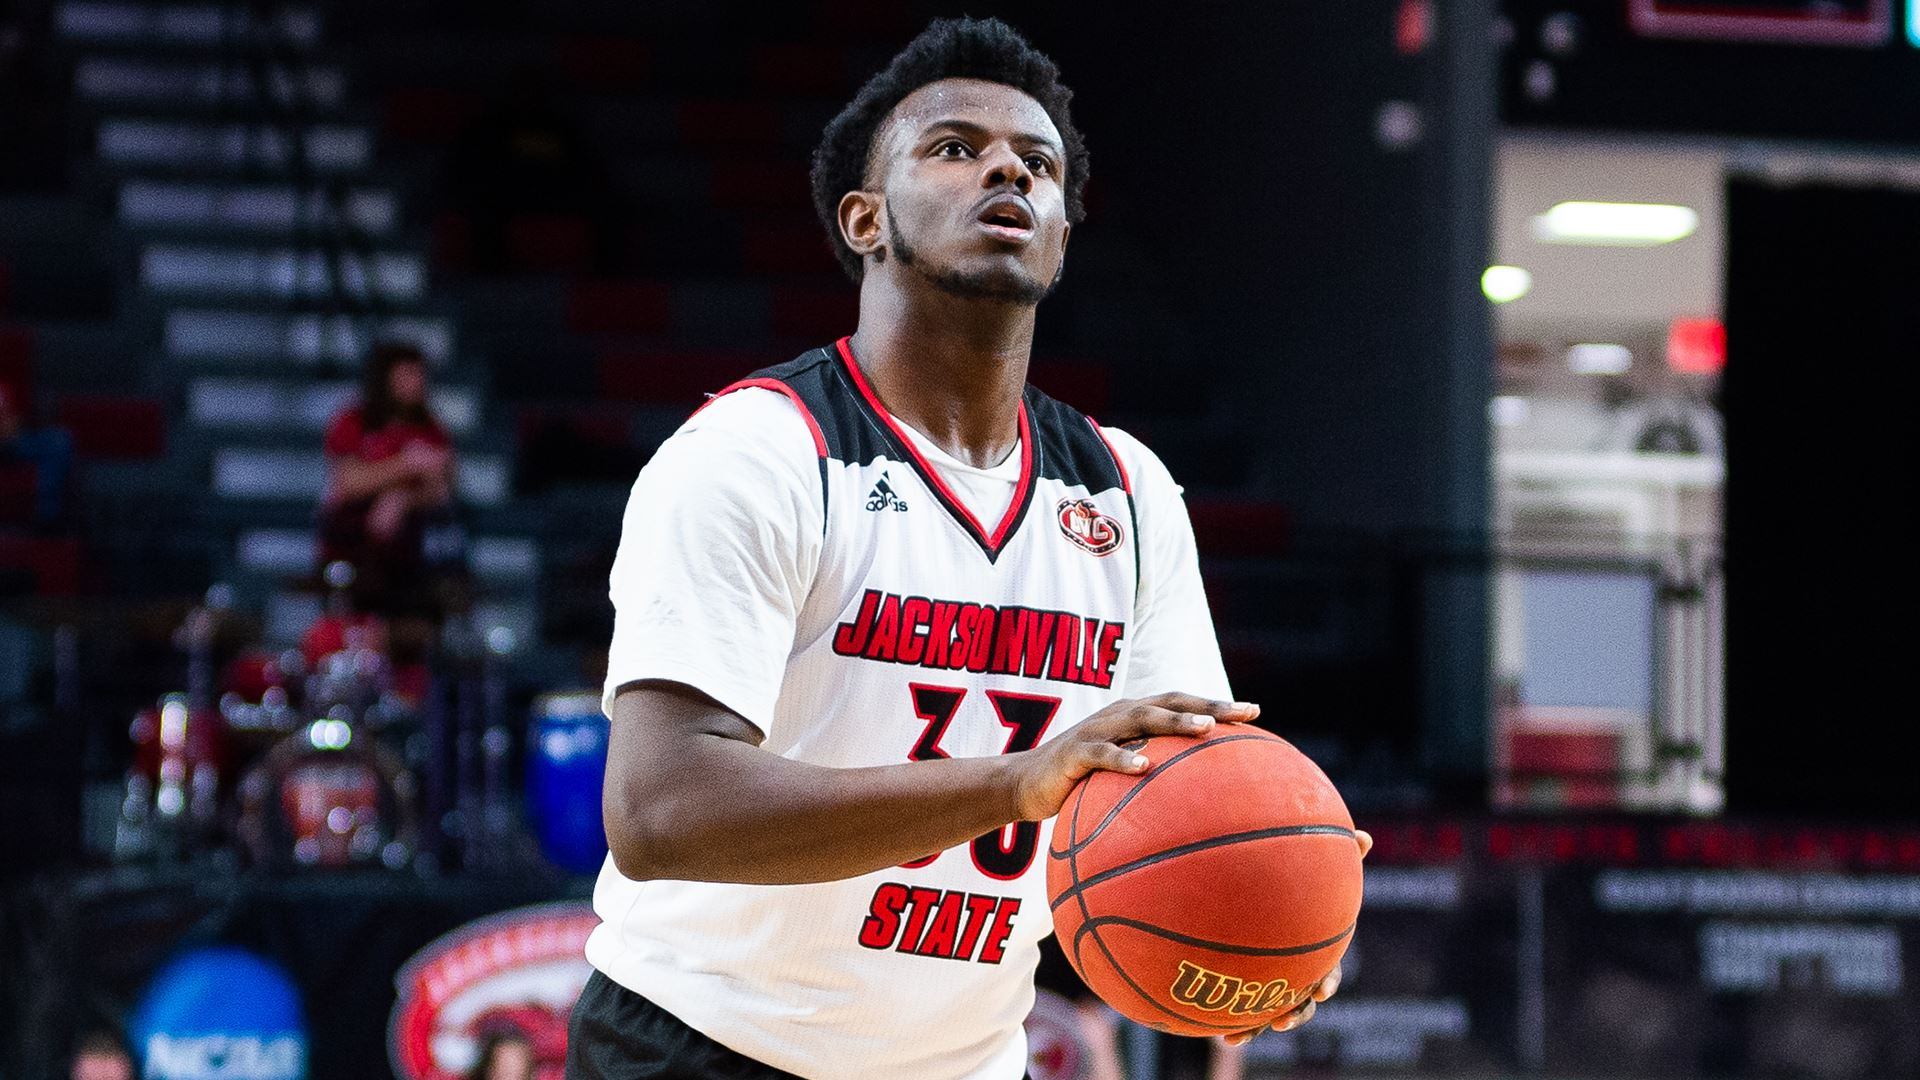 De'Torrion Ware, pictured, preparing to take a shot during the matchup against Tennessee Tech on Thursday, February 13. (Courtesy of JSU)